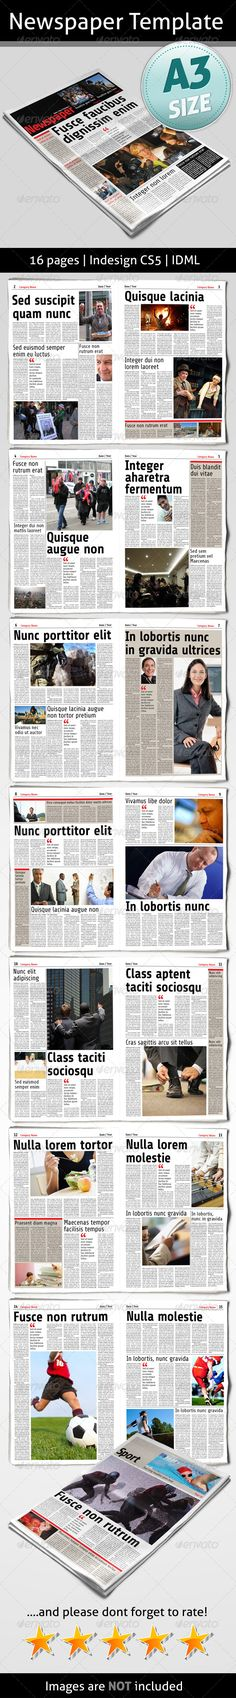 Berliner Newspaper Template 20 Pages | Print Templates, Newsletter